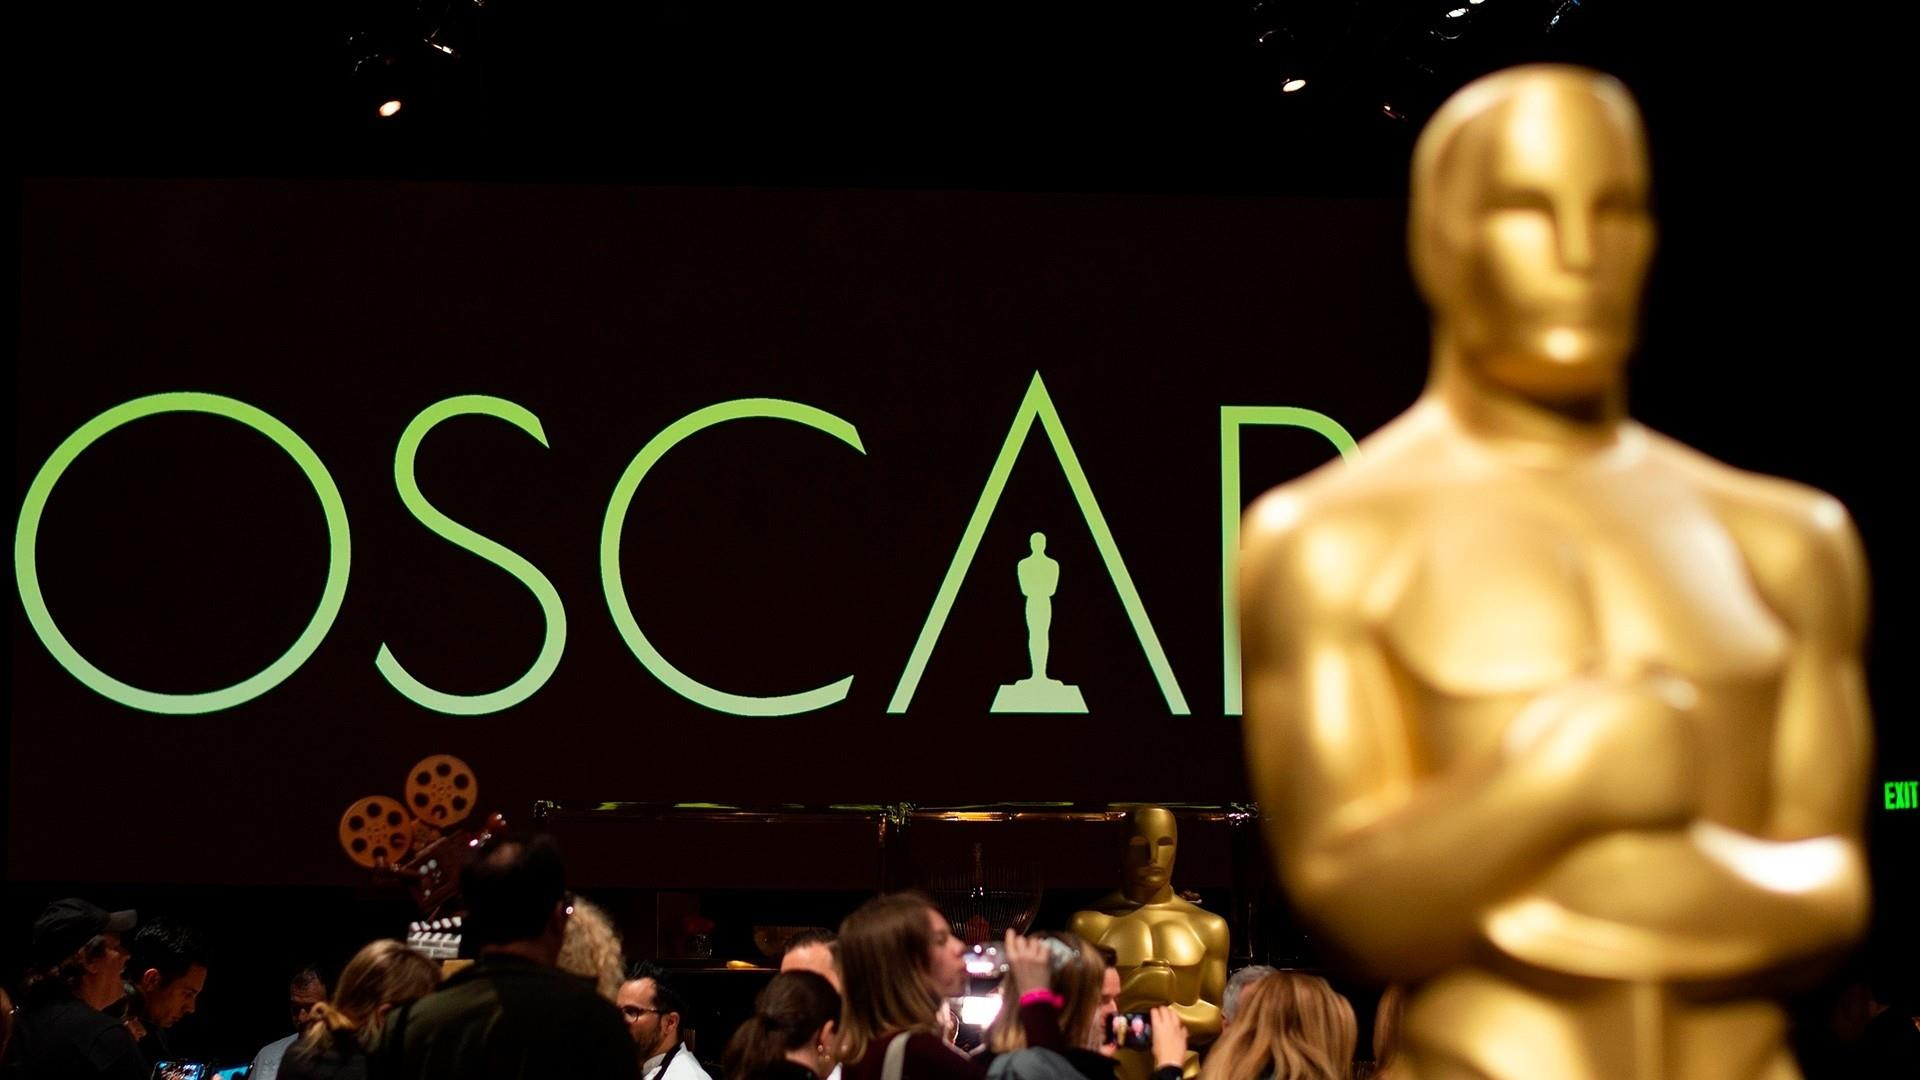 Oscars to air award categories after pushback